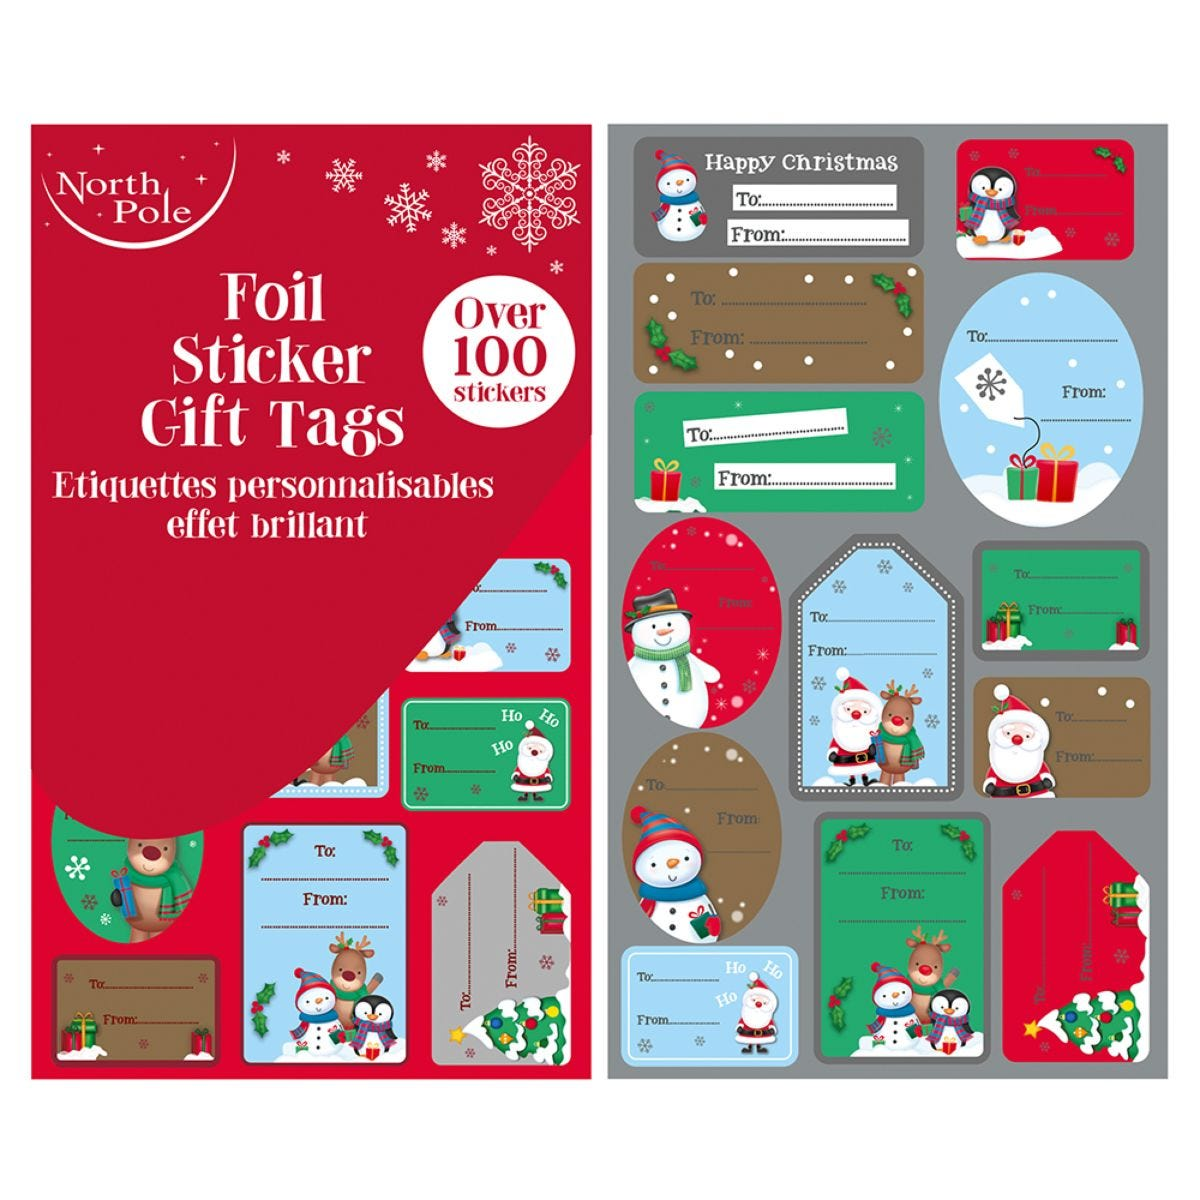 100 Foil Sticker Gift Tags